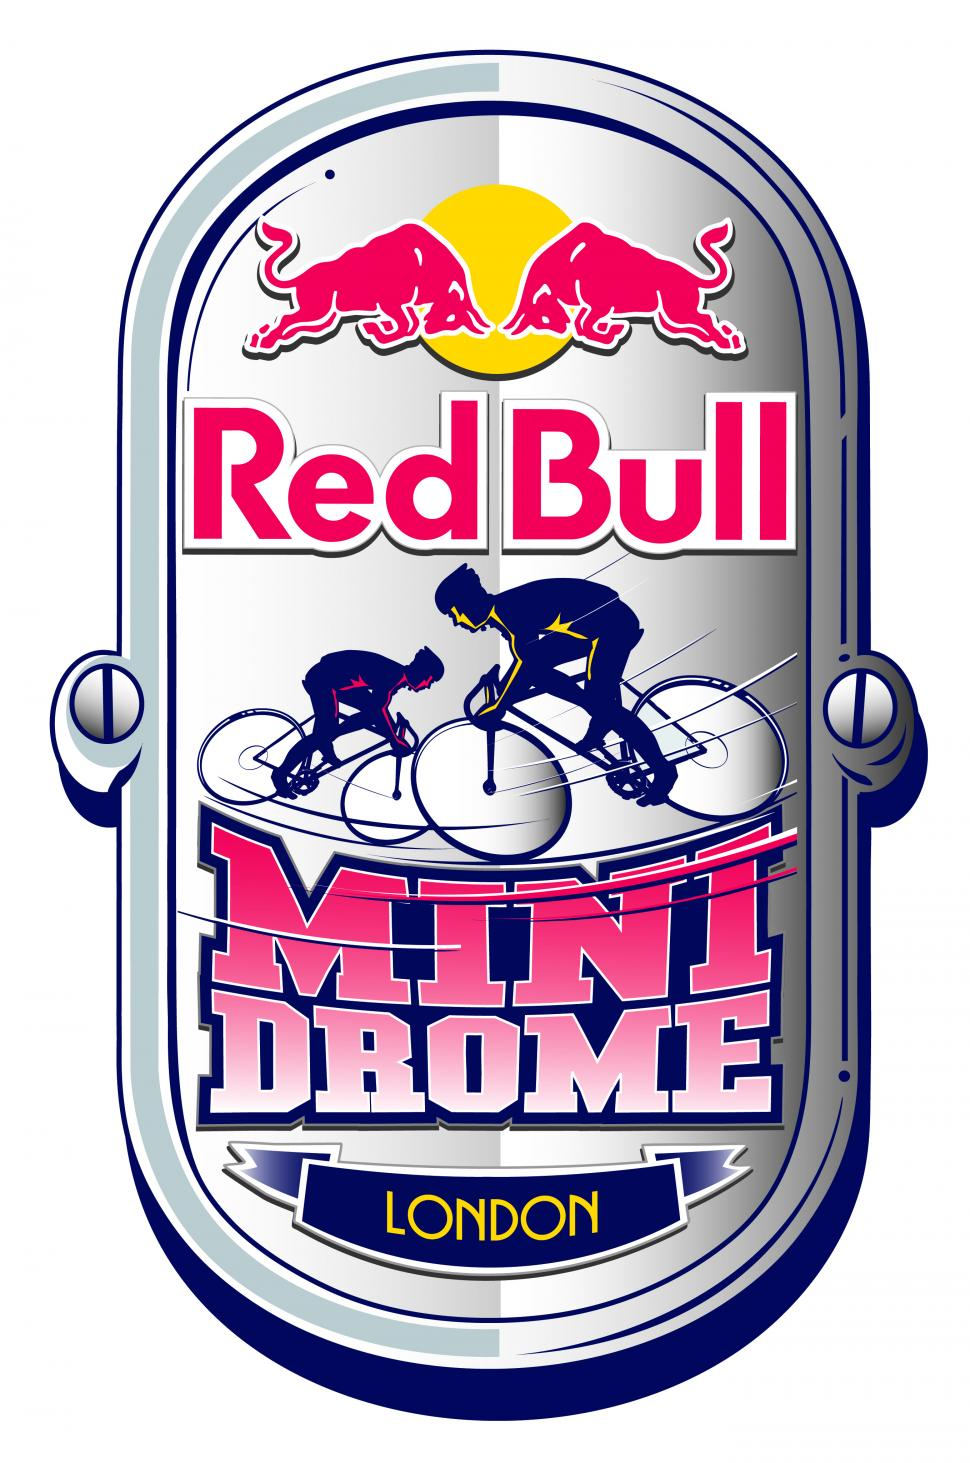 Red Bull Mini Drome logo final.jpg